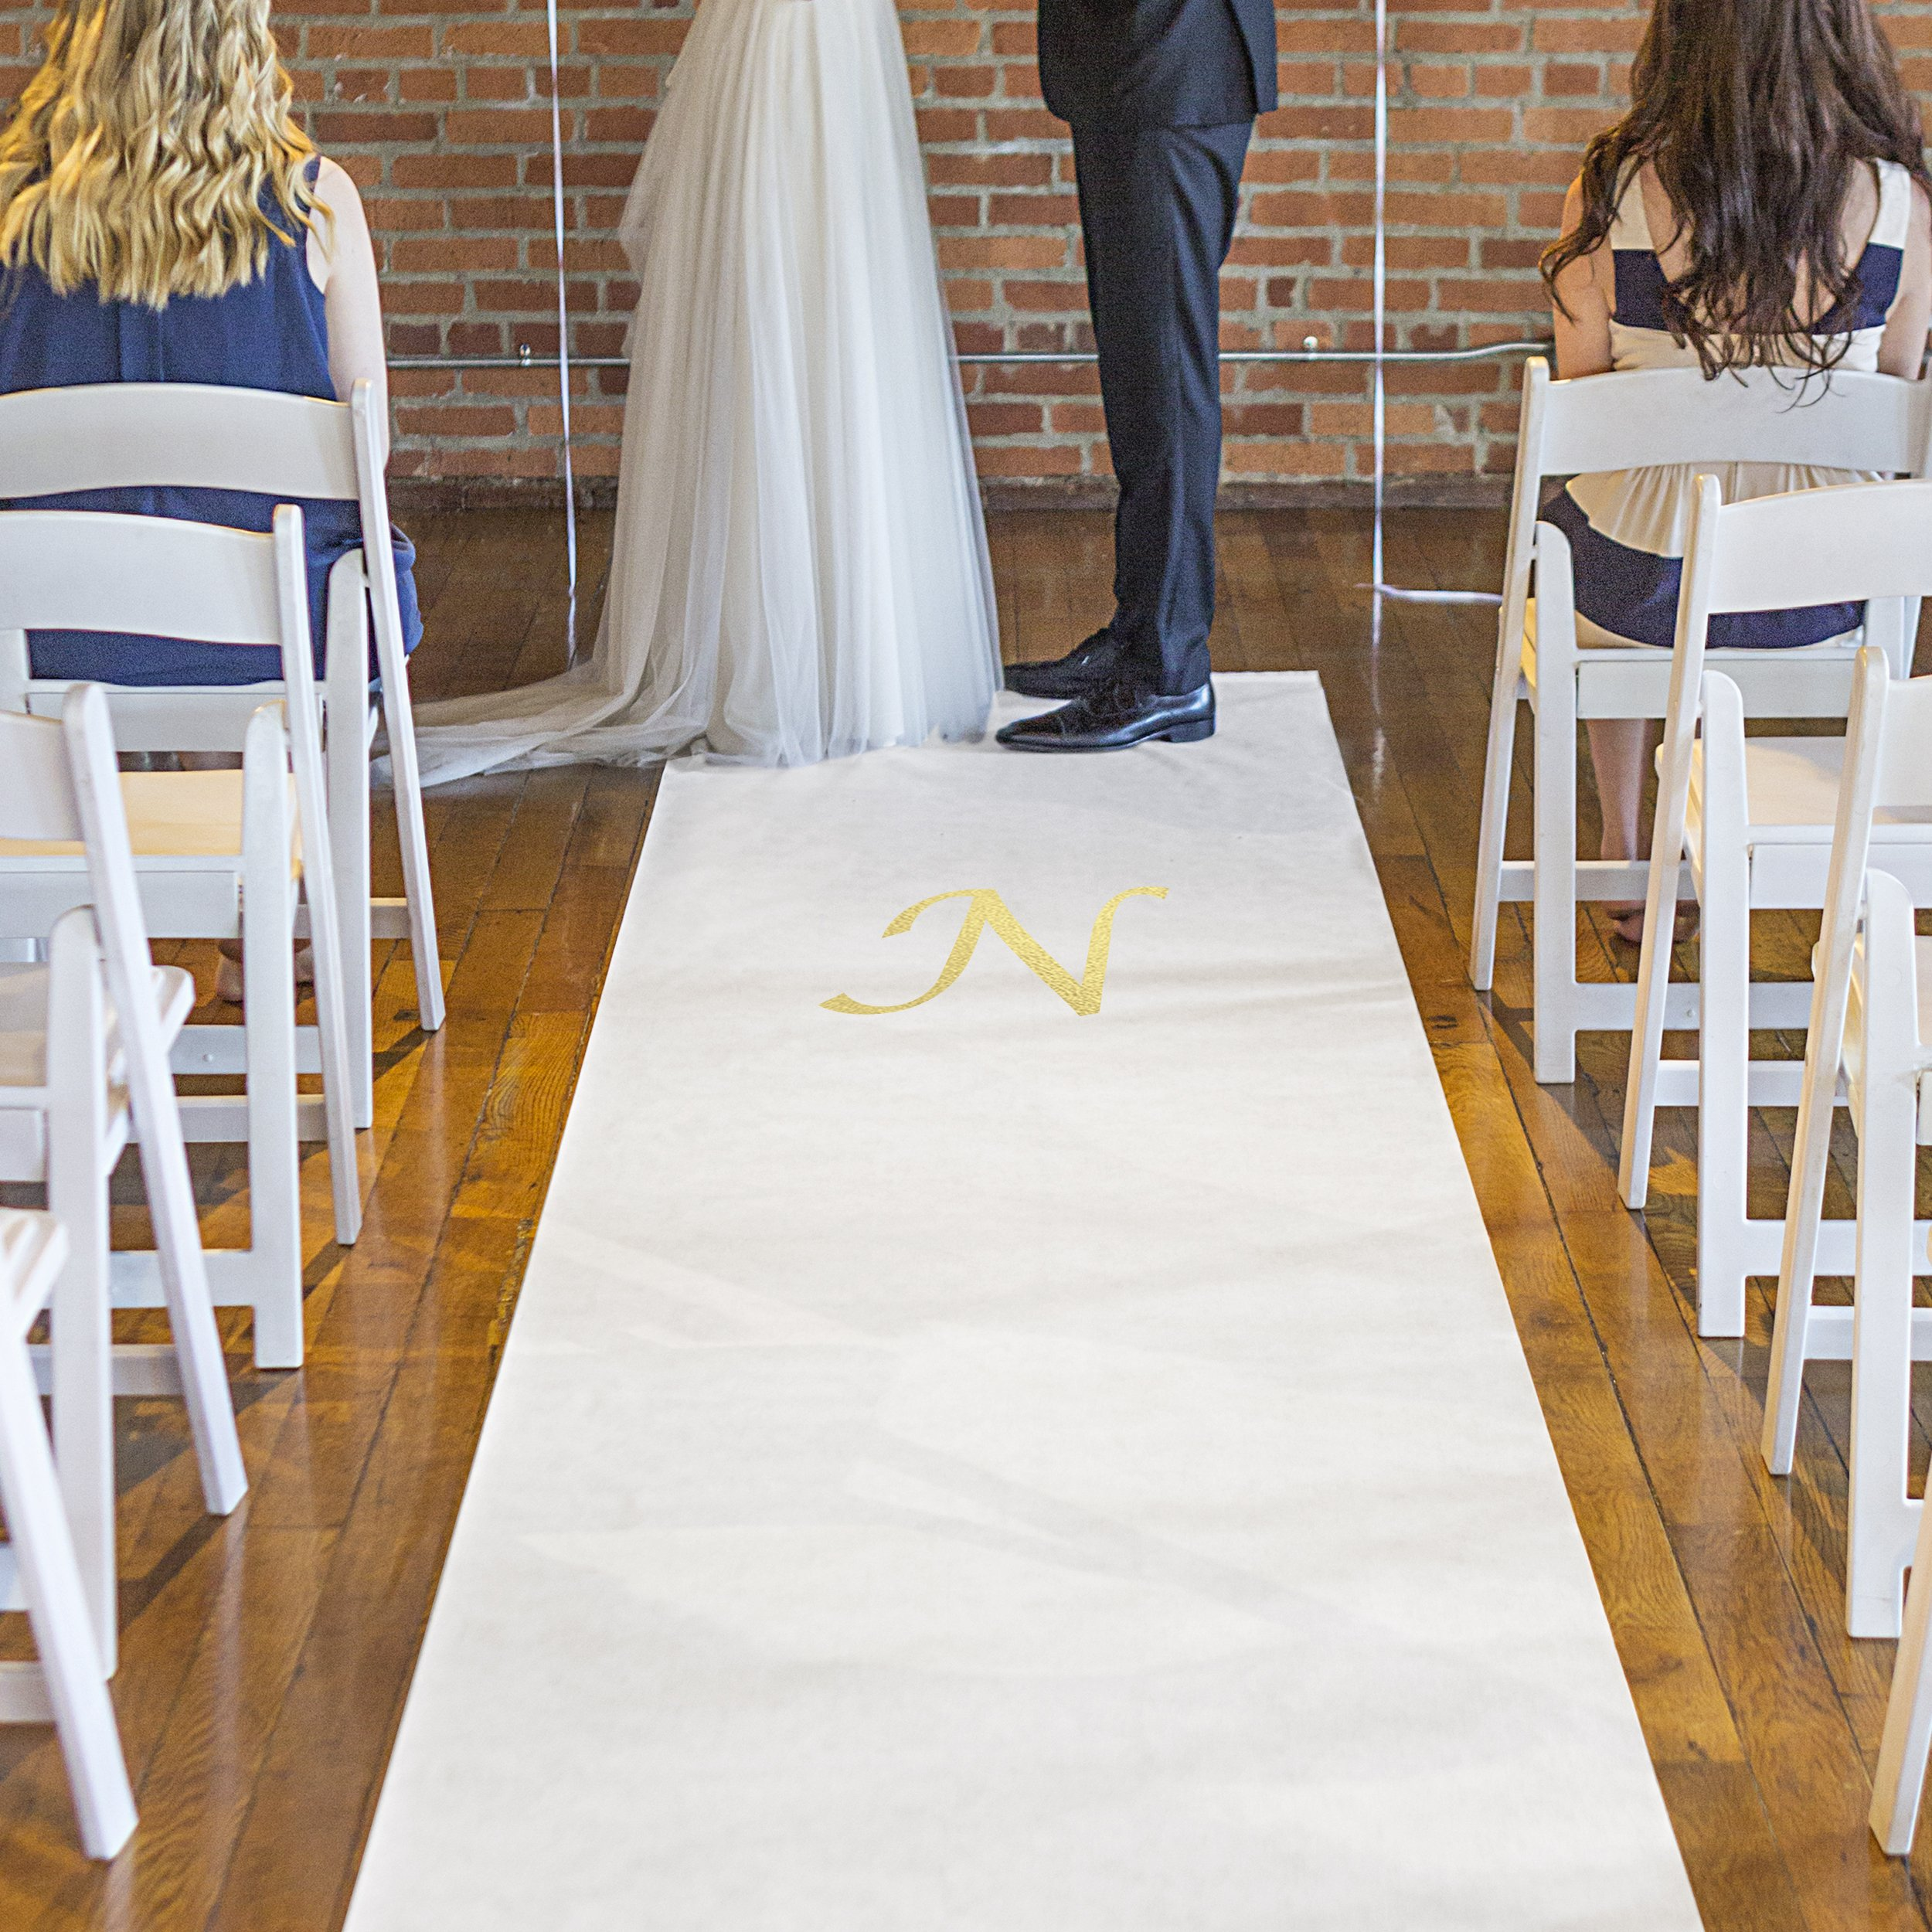 Cathy's Concepts Personalized Wedding Aisle Runner White